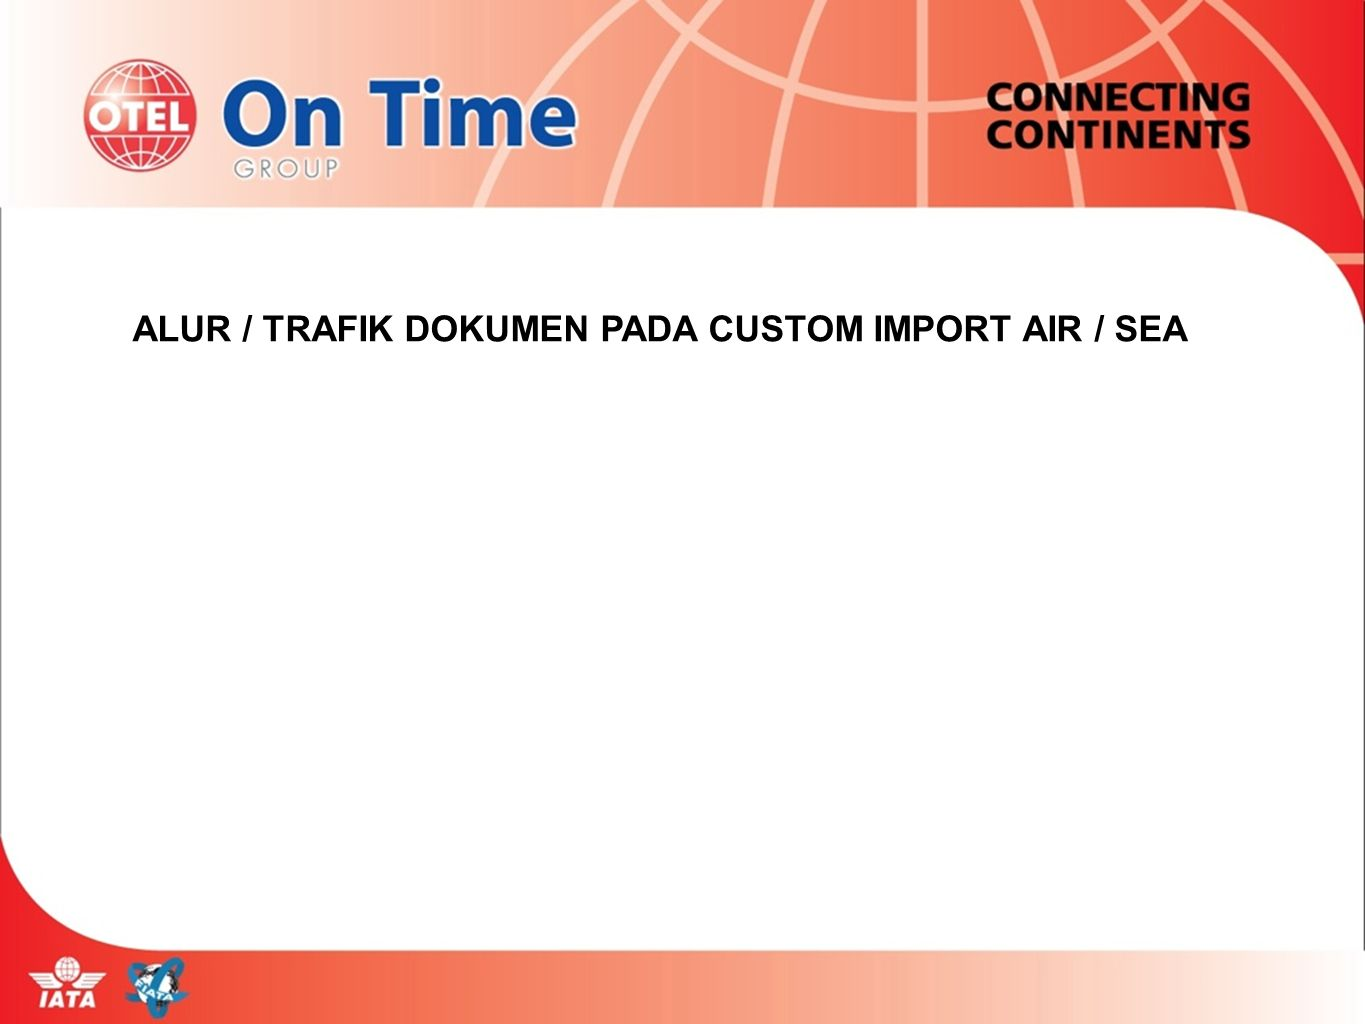 ALUR / TRAFIK DOKUMEN PADA CUSTOM IMPORT AIR / SEA